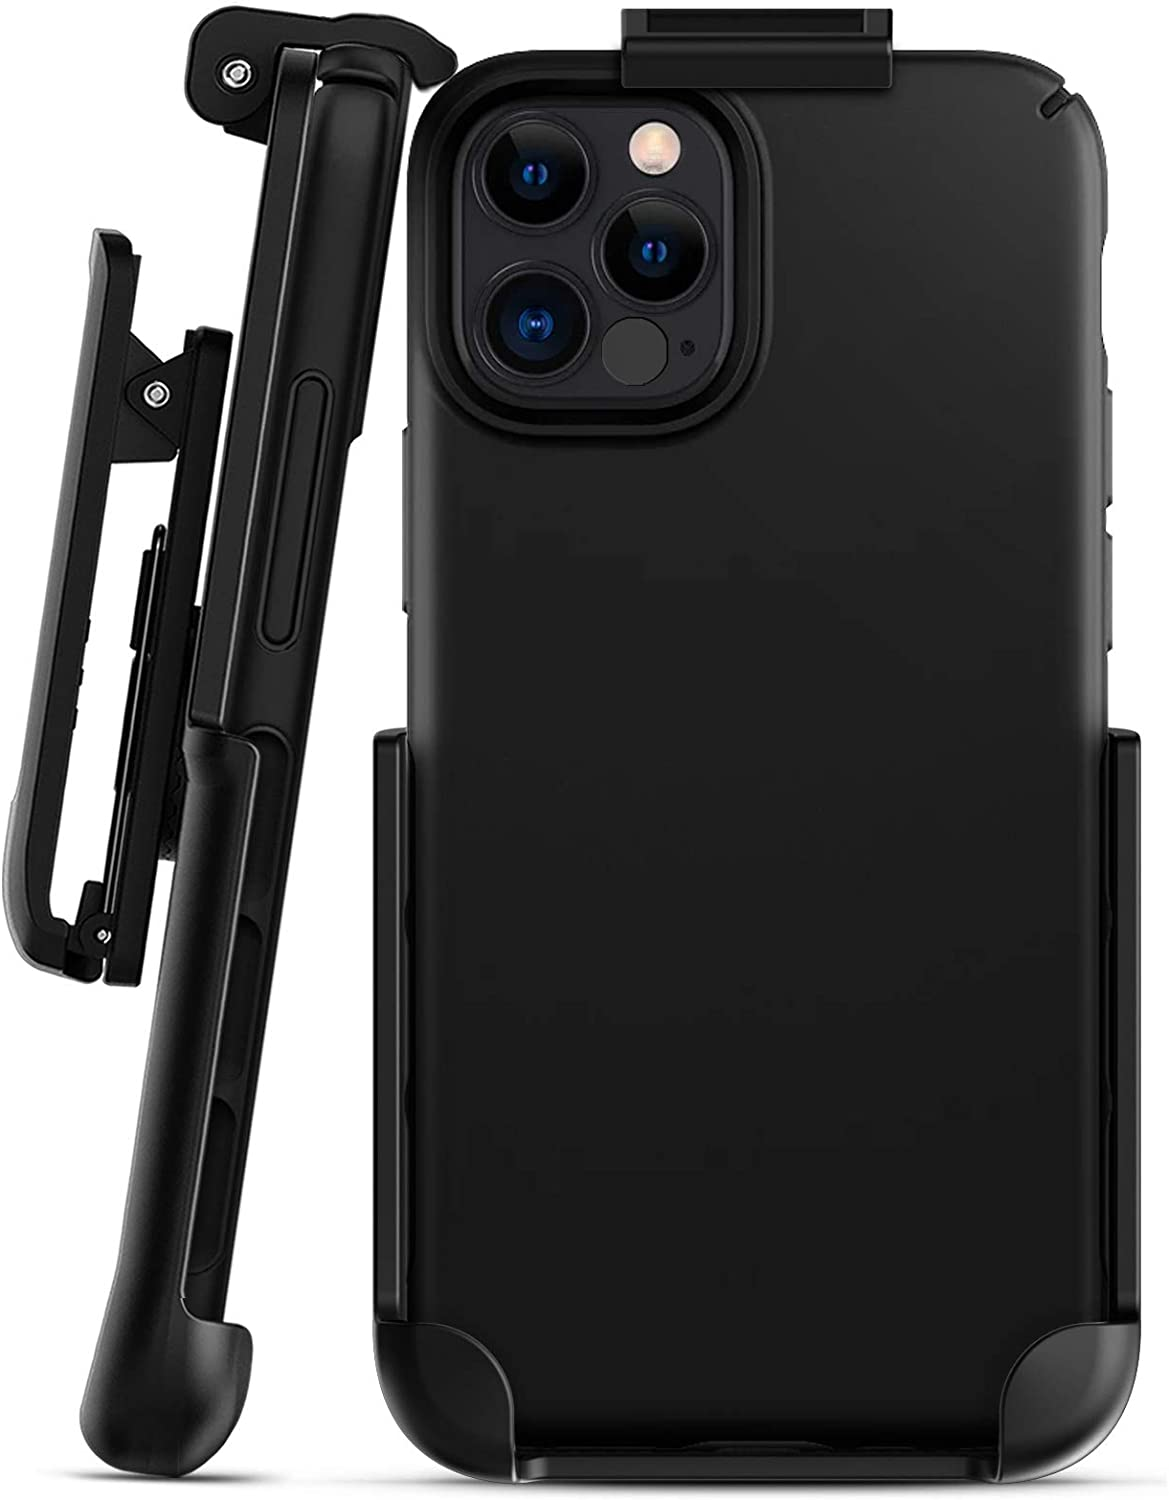 Encased Belt Clip for Caseology Dual Grip Compatible with iPhone 12 & iPhone 12 Pro (Holster Only - Case is not Included)